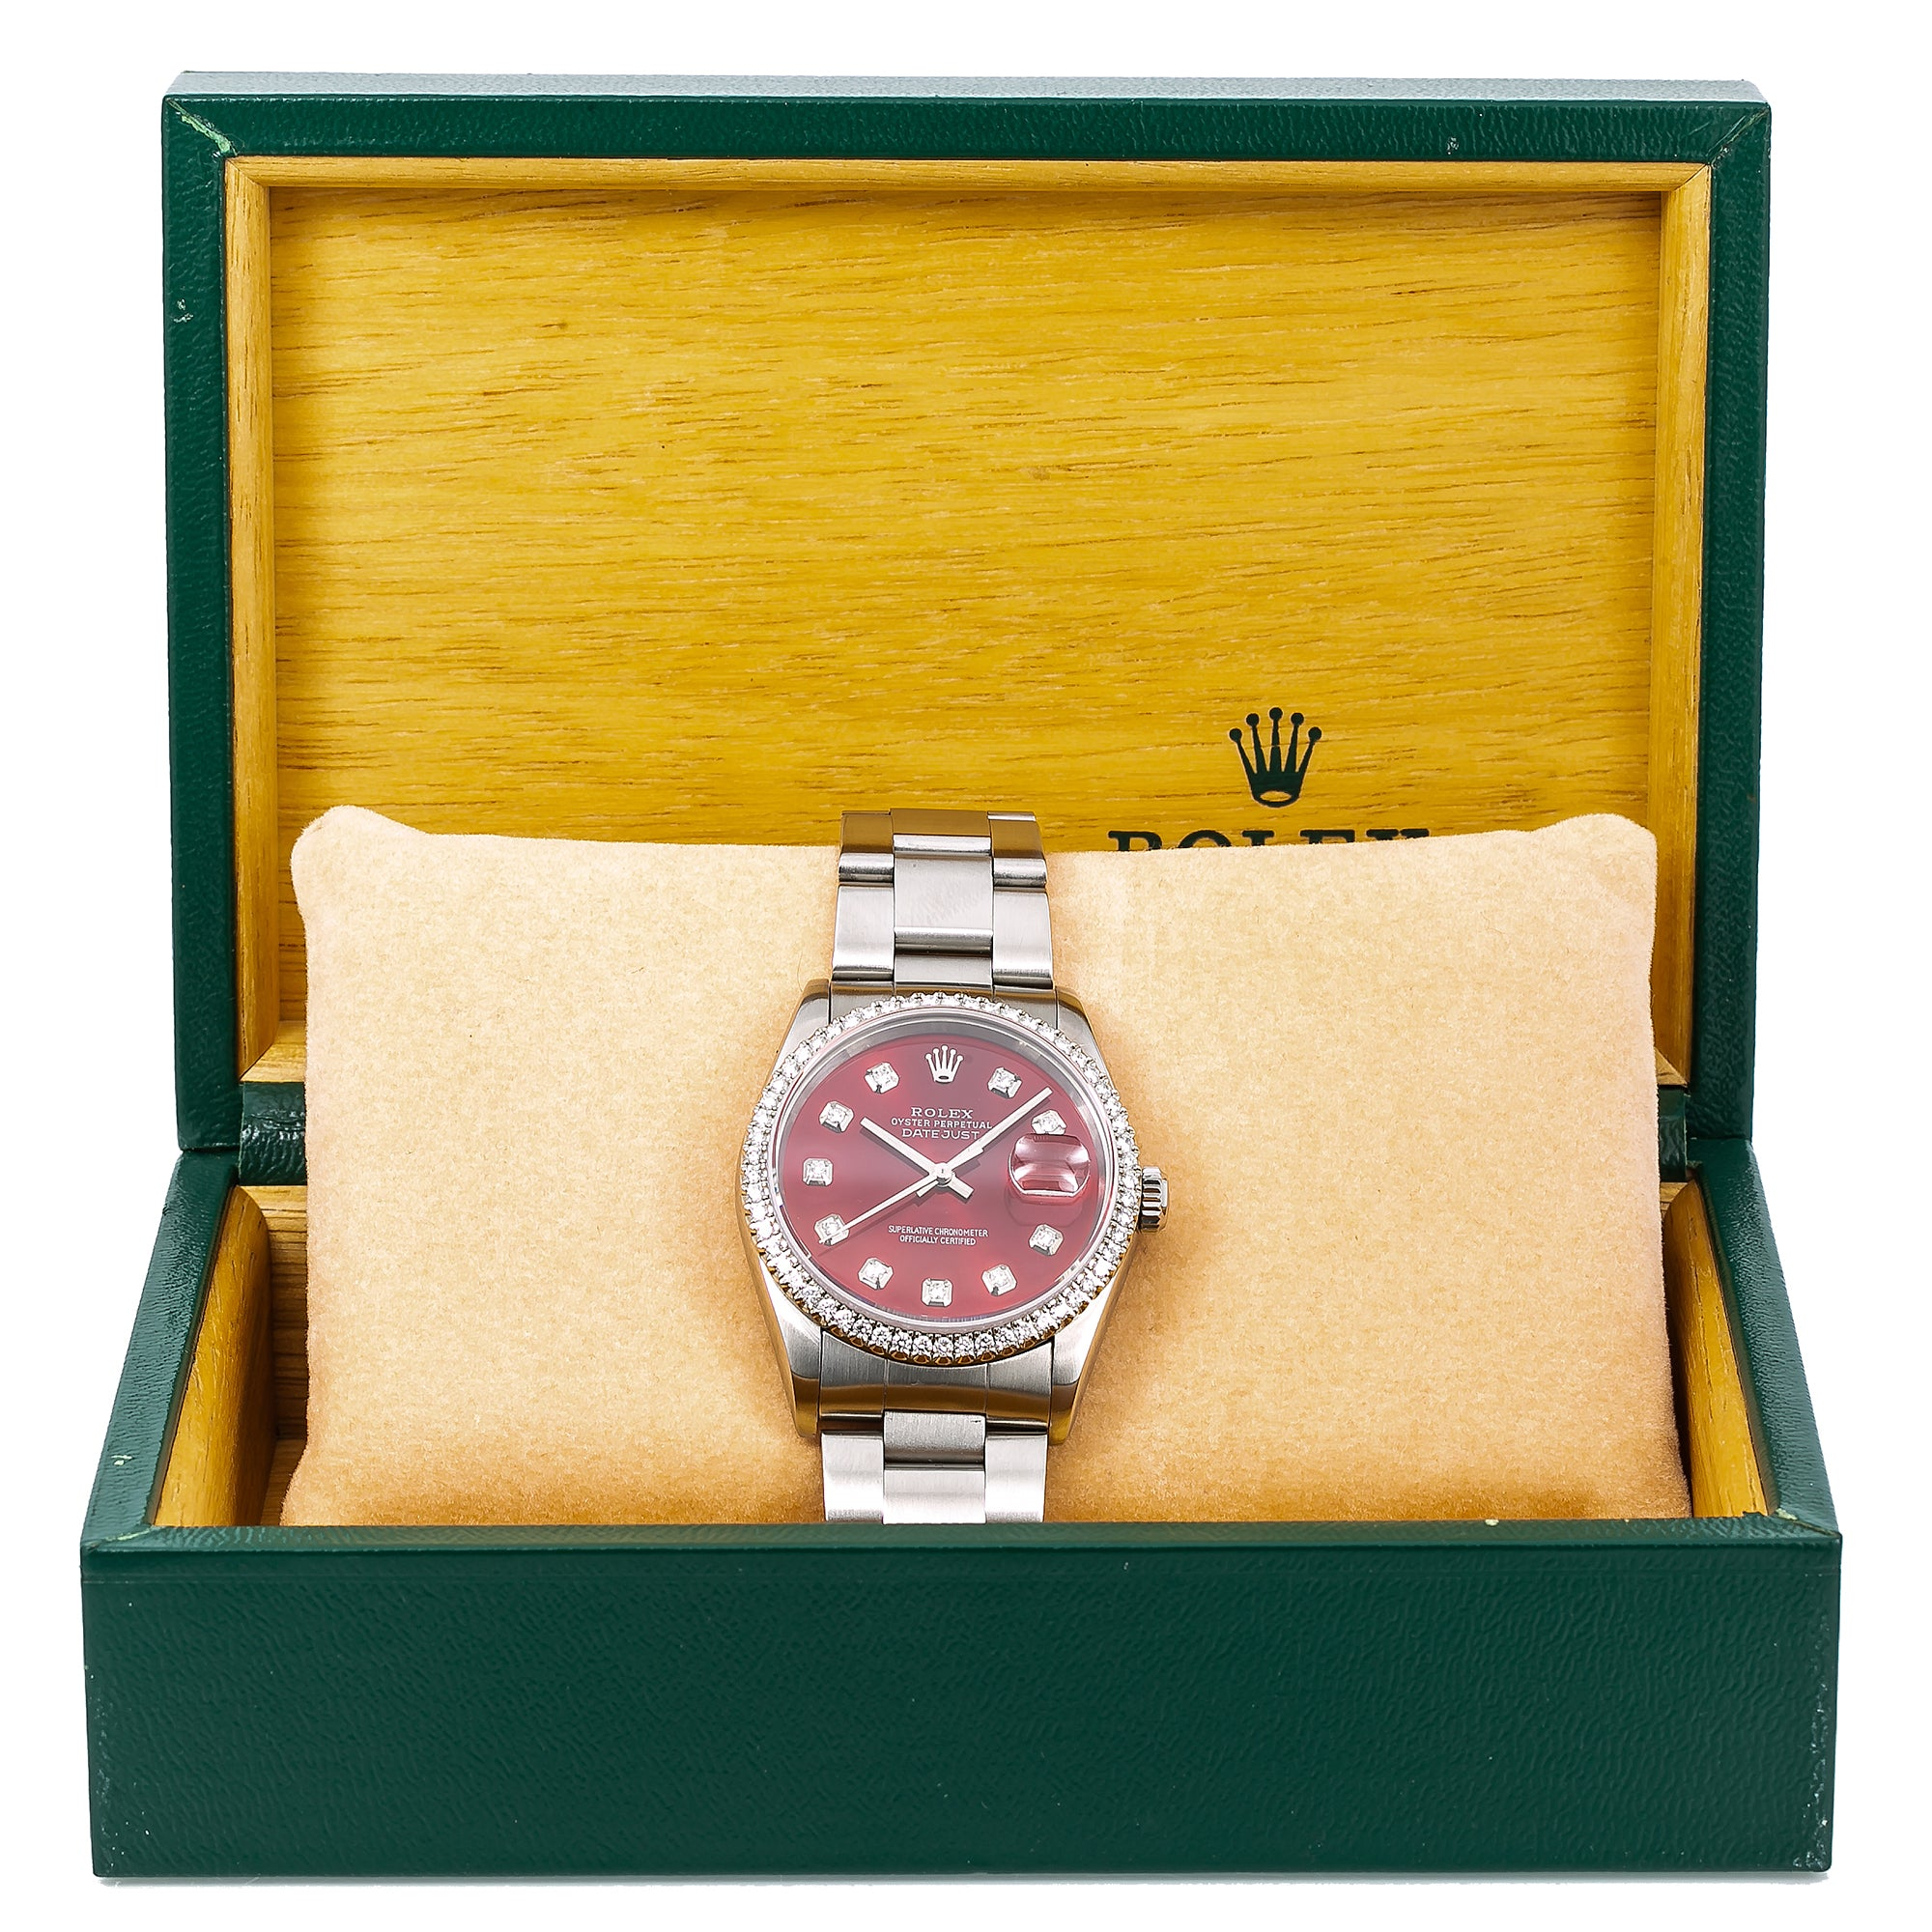 Rolex Datejust 16200 36MM Red Diamond Dial With Stainless Steel Oyster Bracelet